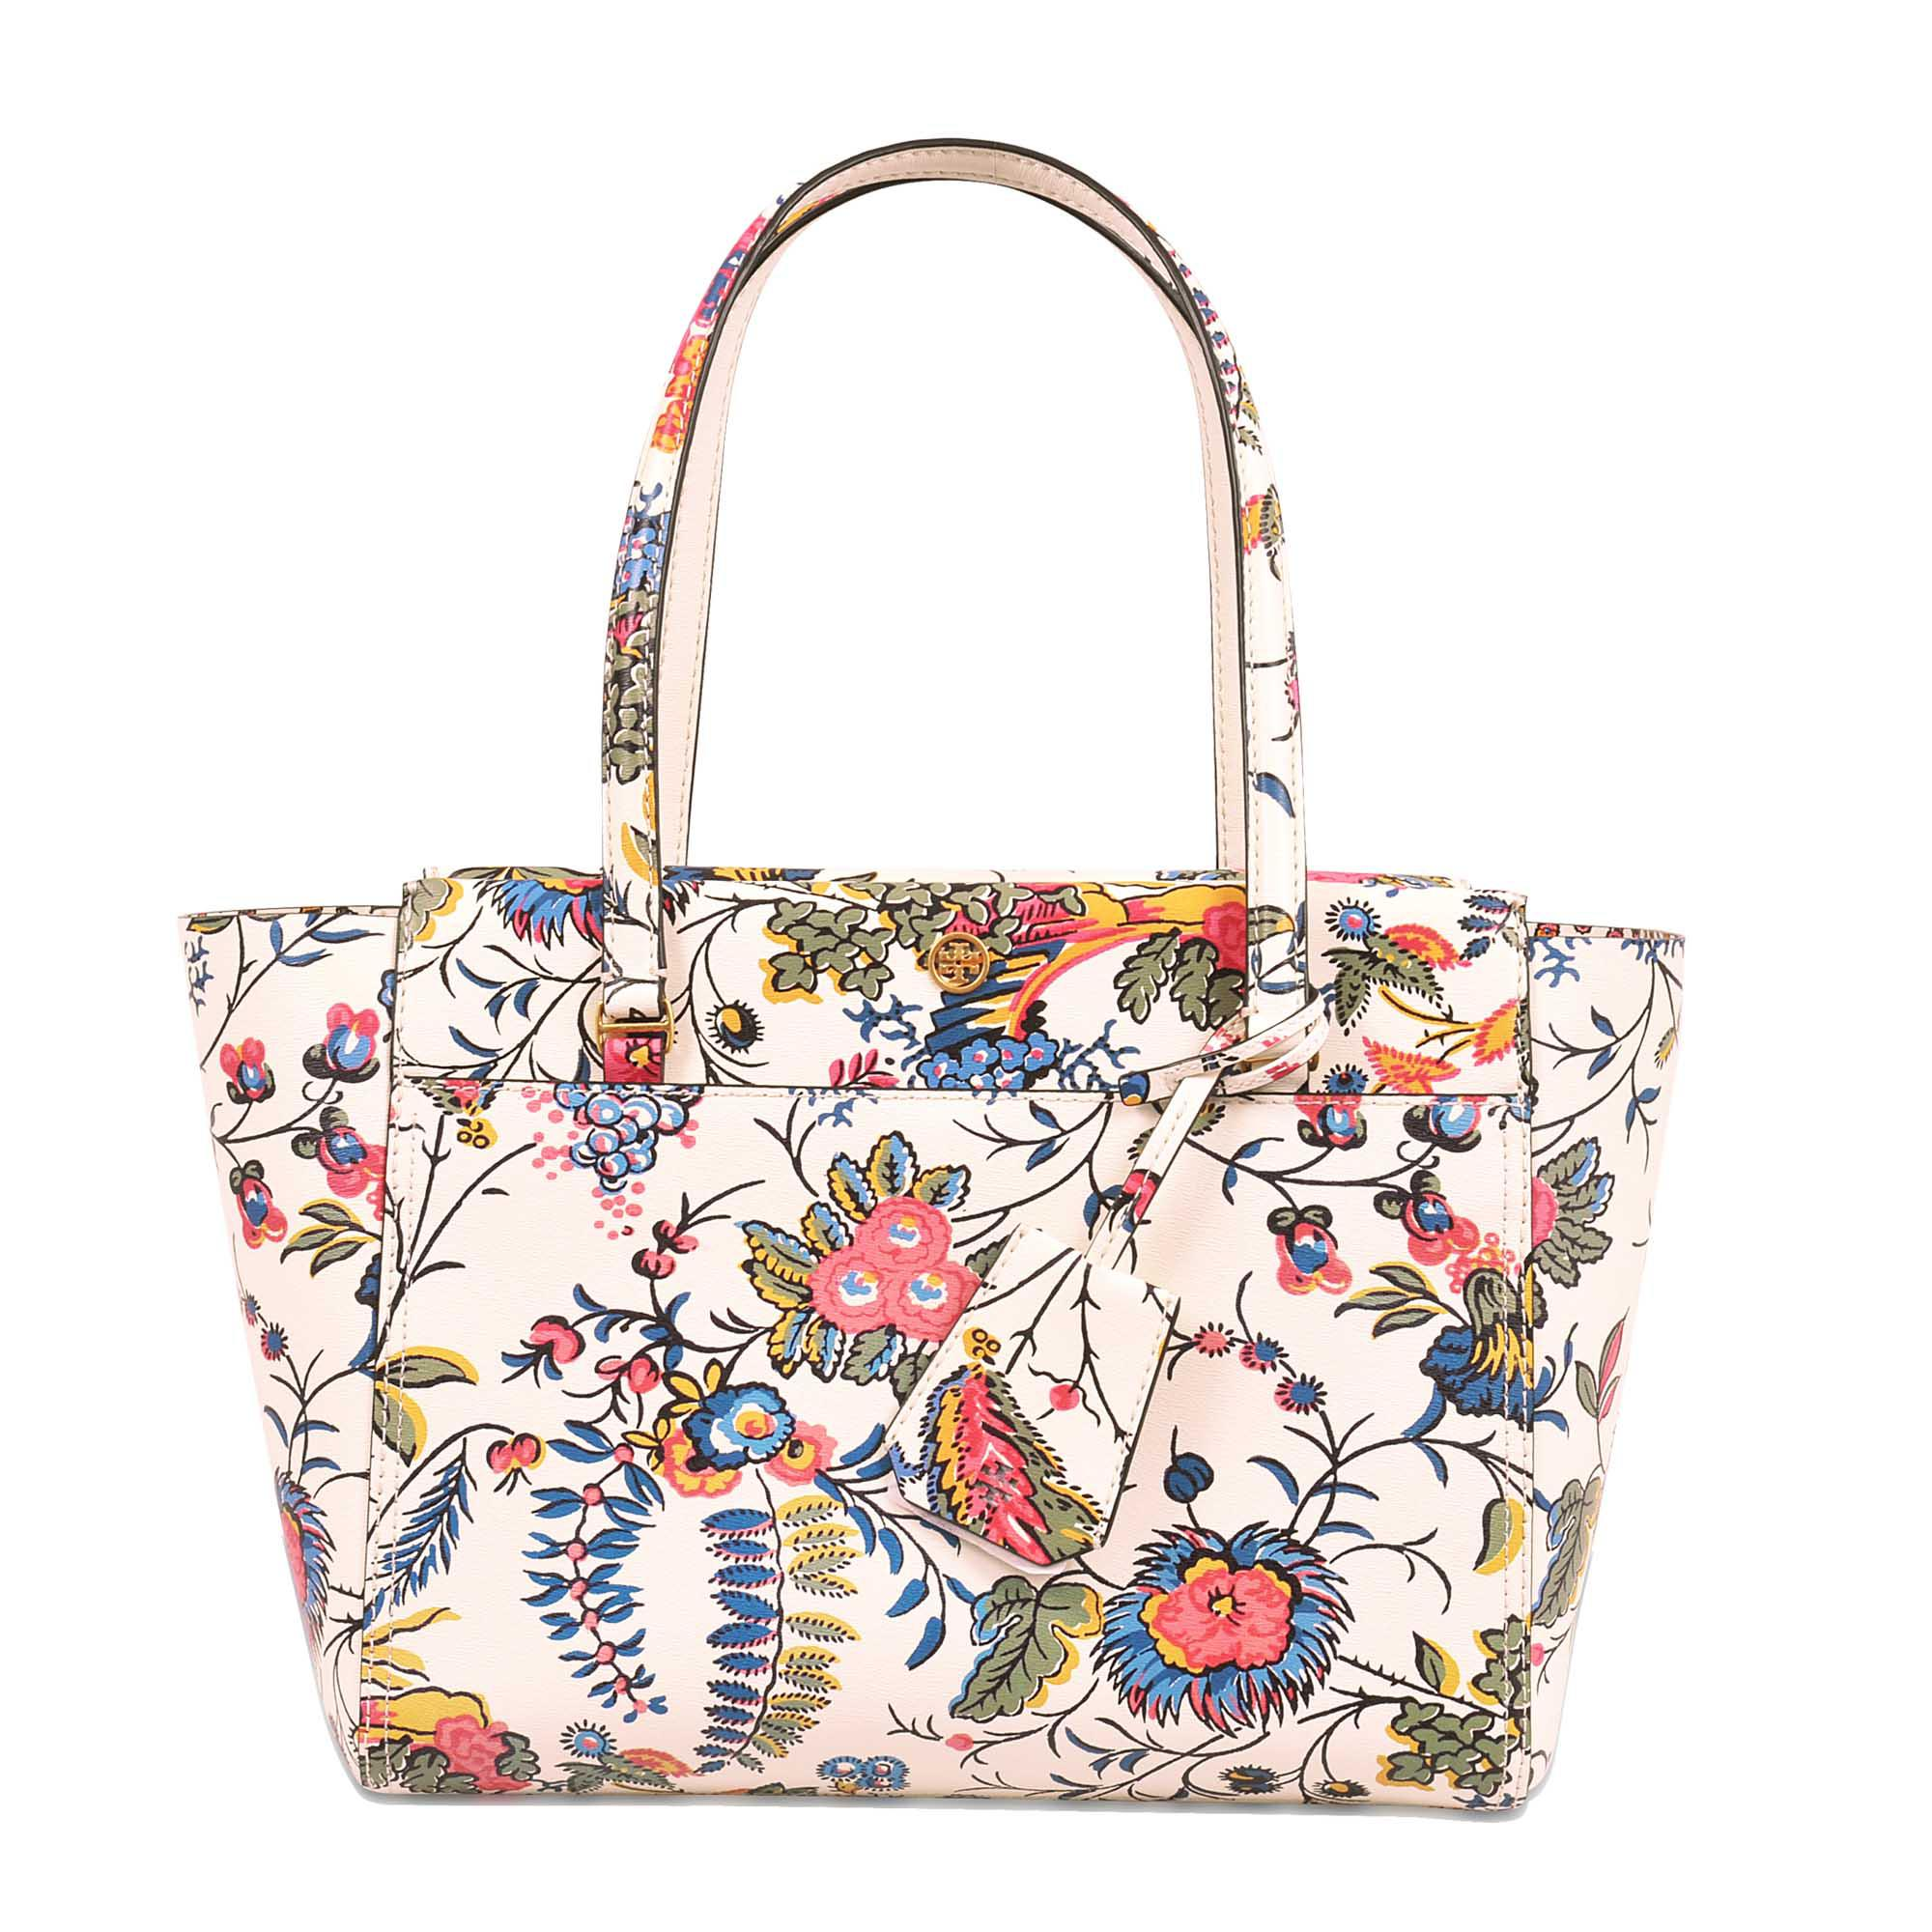 ffaaaf2d9a8 Lyst - Tory Burch Parker Small Floral-print Tote Bag